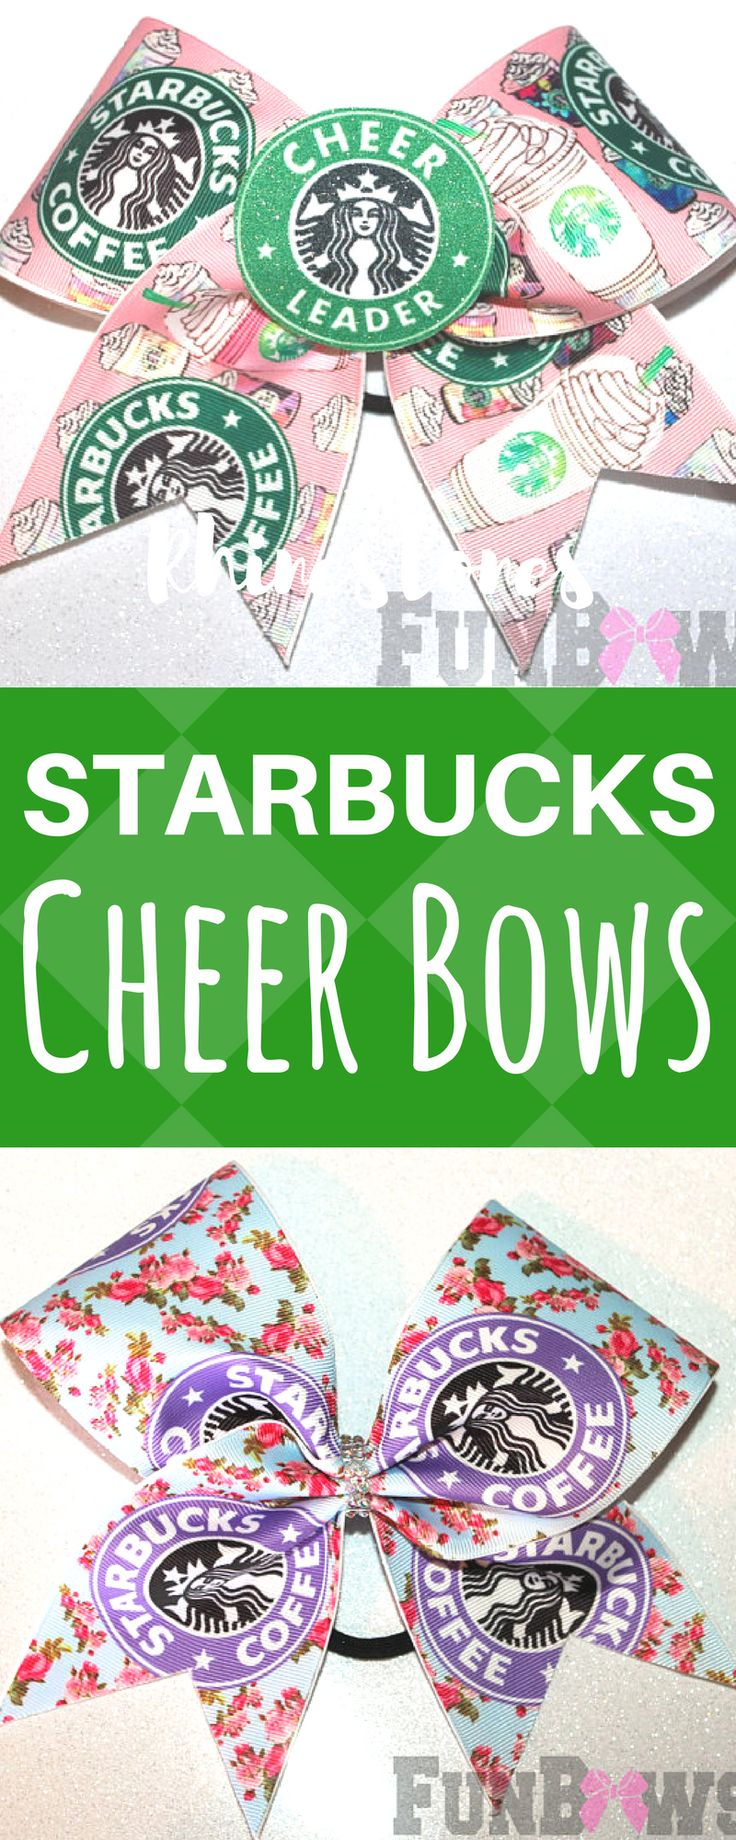 Starbucks cheerleading hair bows. Awesome Floral Starbucks Cheer Allstar sized bow by FunBows. Cheerleader gift. Cheer coach. Coffee loving cheerleader! #starbucks #cheerleading #ad